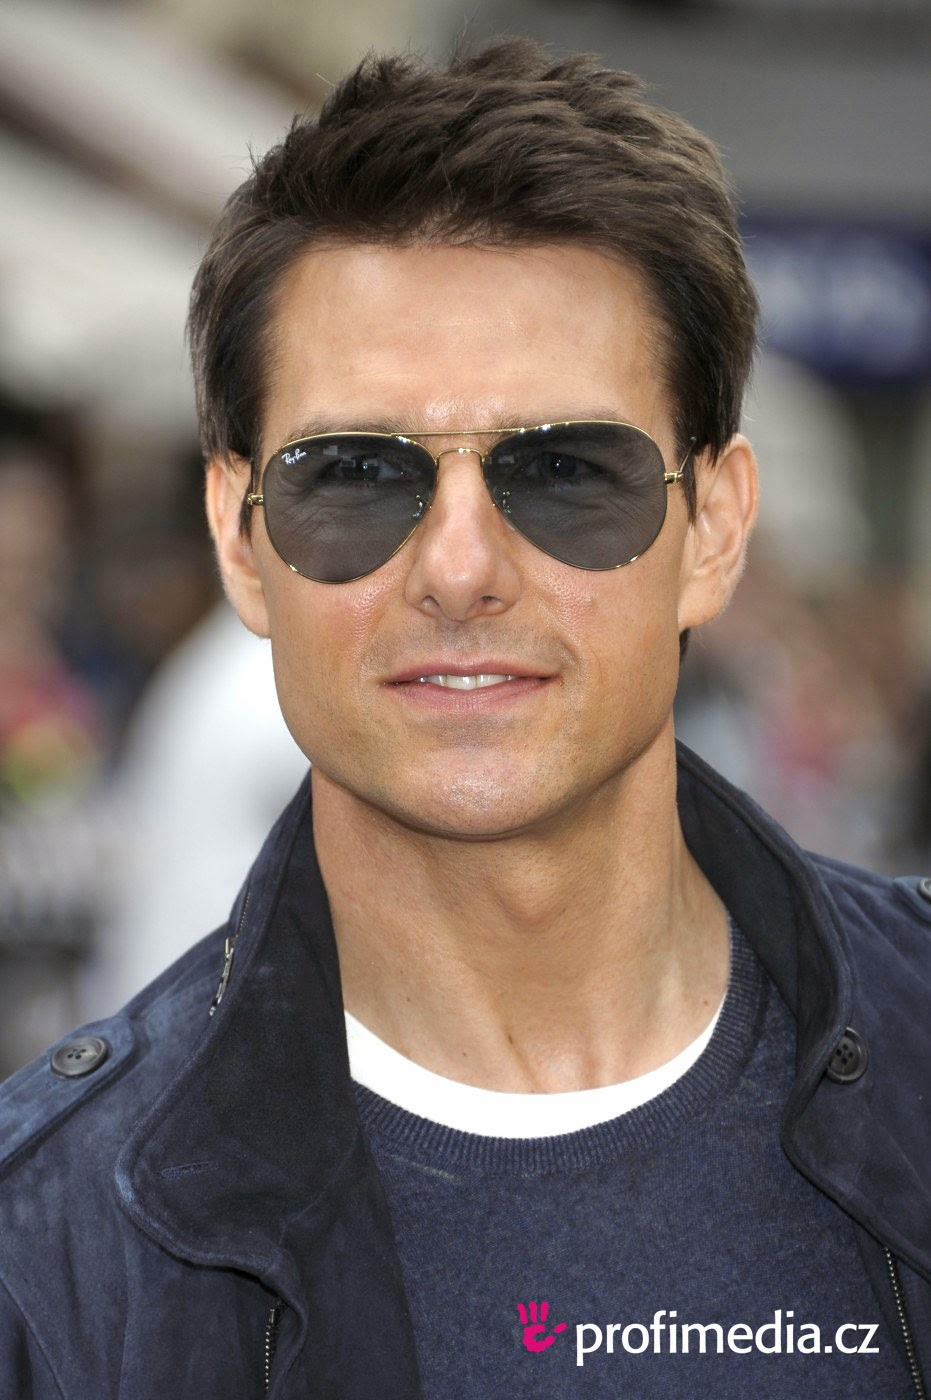 Tom Cruise Haircut Free Wallpapers